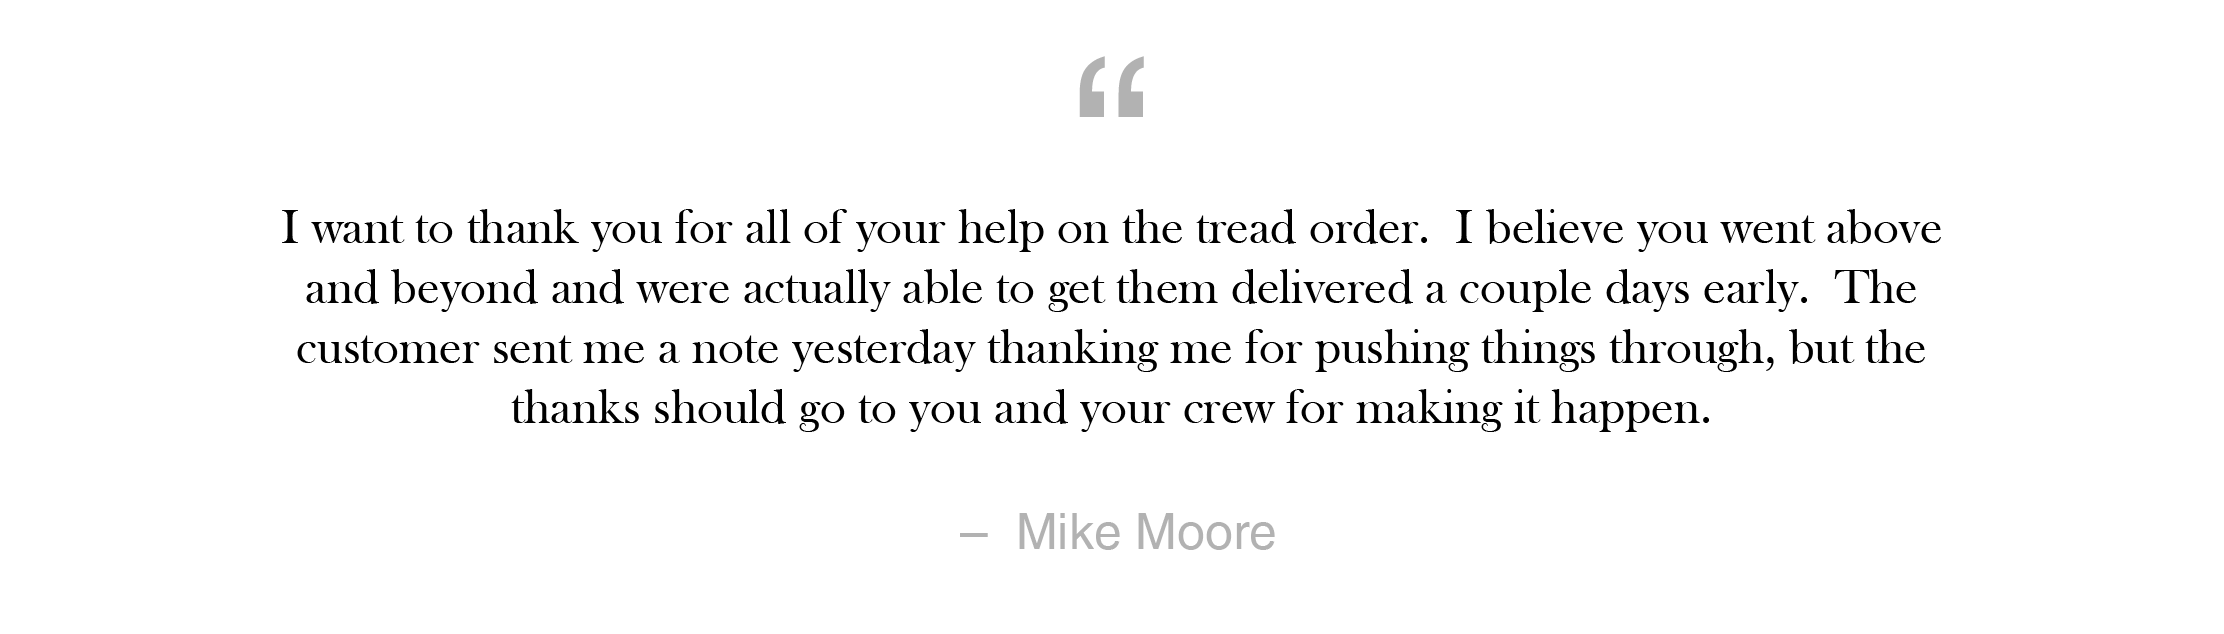 Quote#9_MikeMoore-01.png